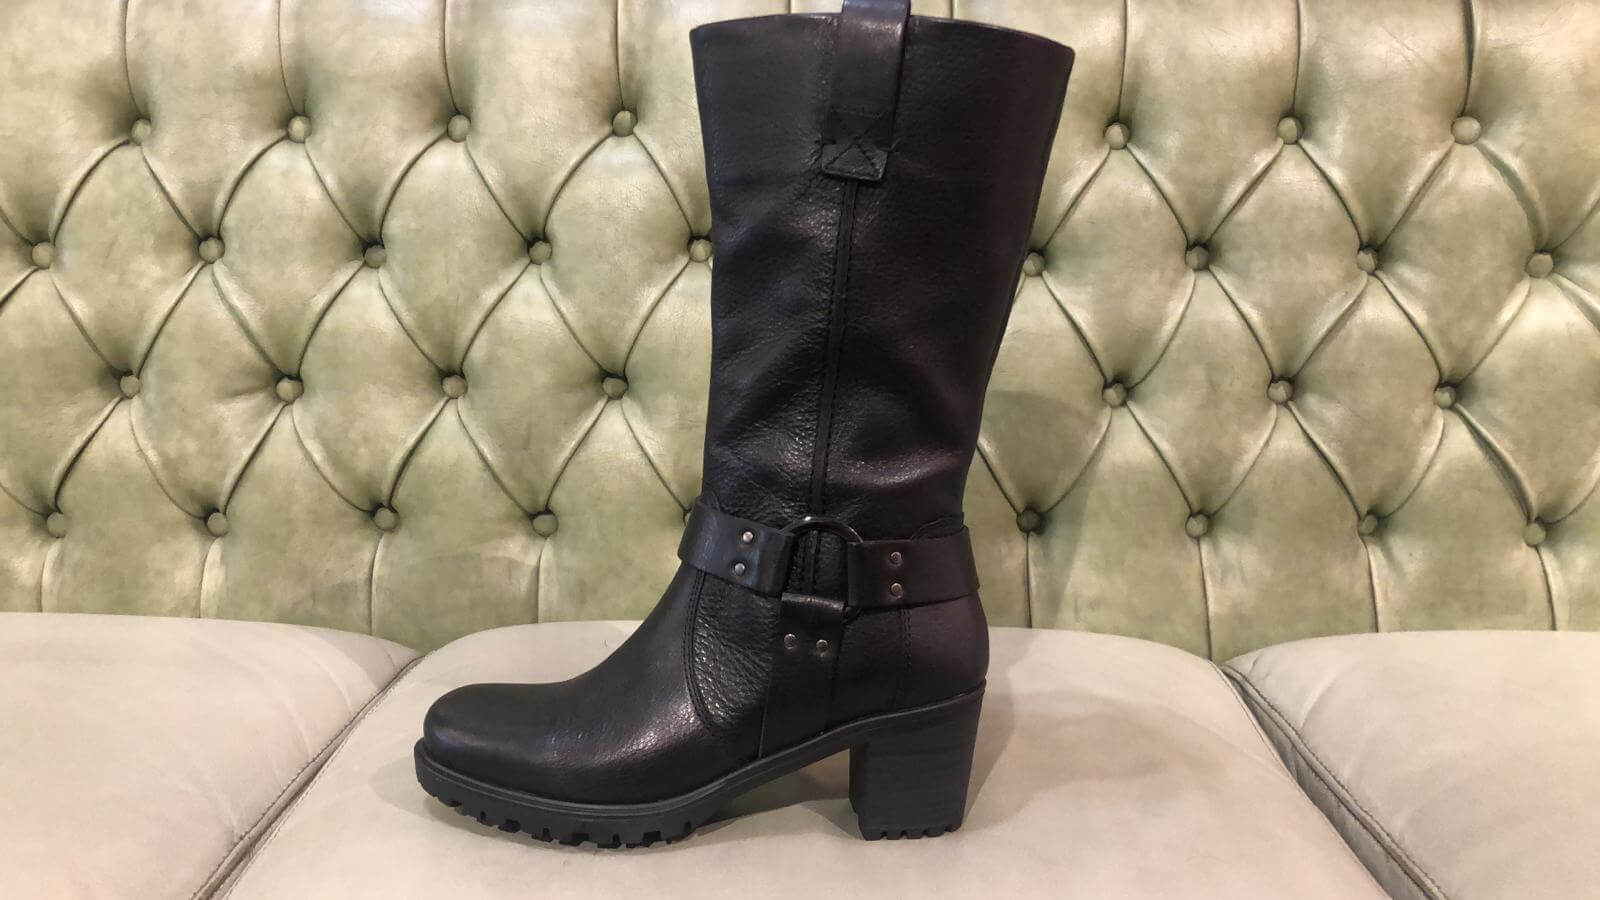 black elather winter boots with fur and mid heel